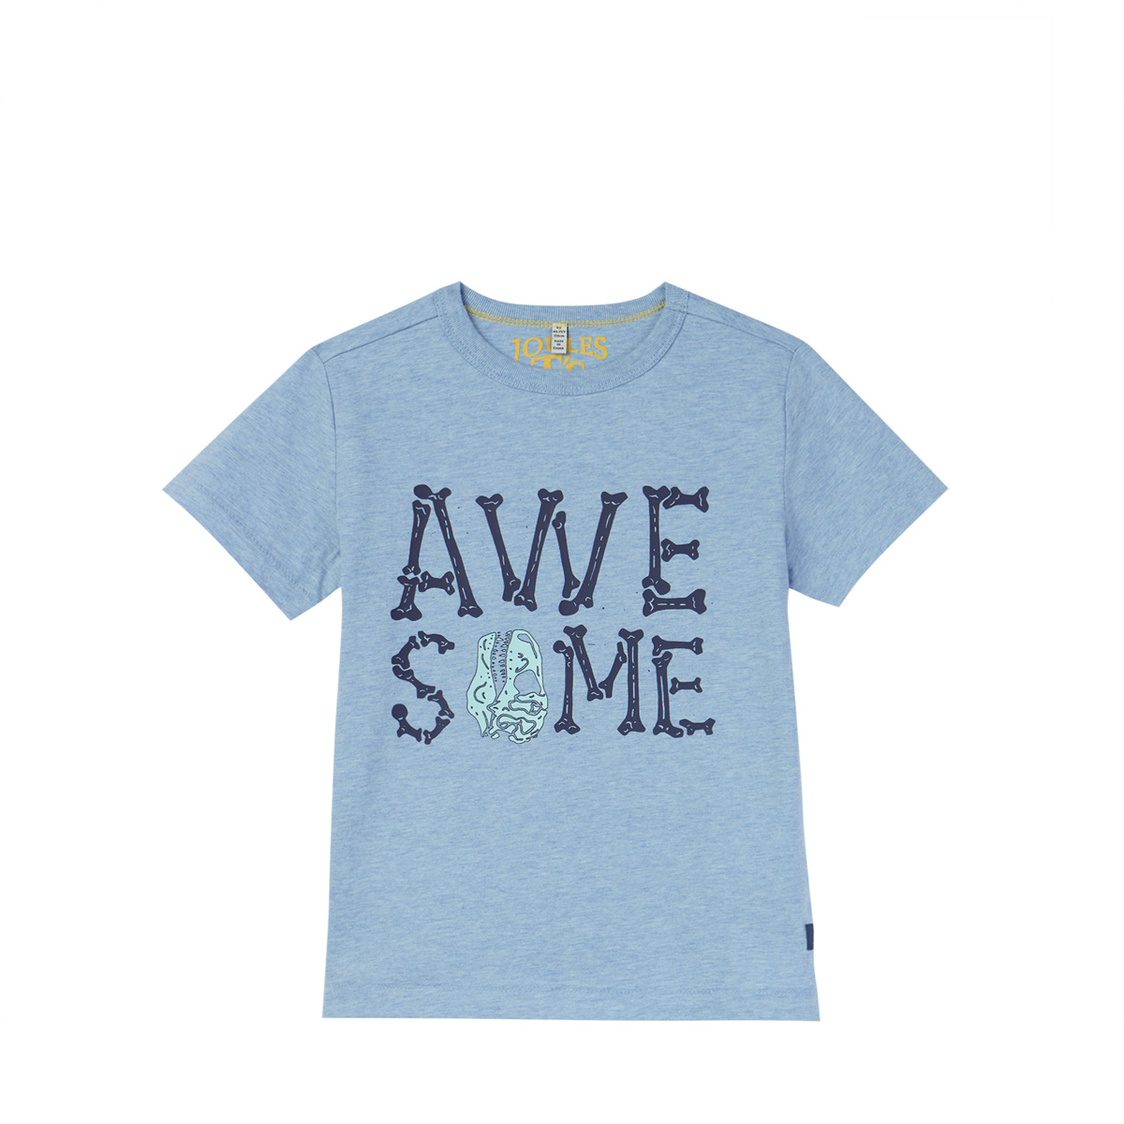 Castaway Glow In The Dark Blue Awesome T-Shirt 4-10 Years